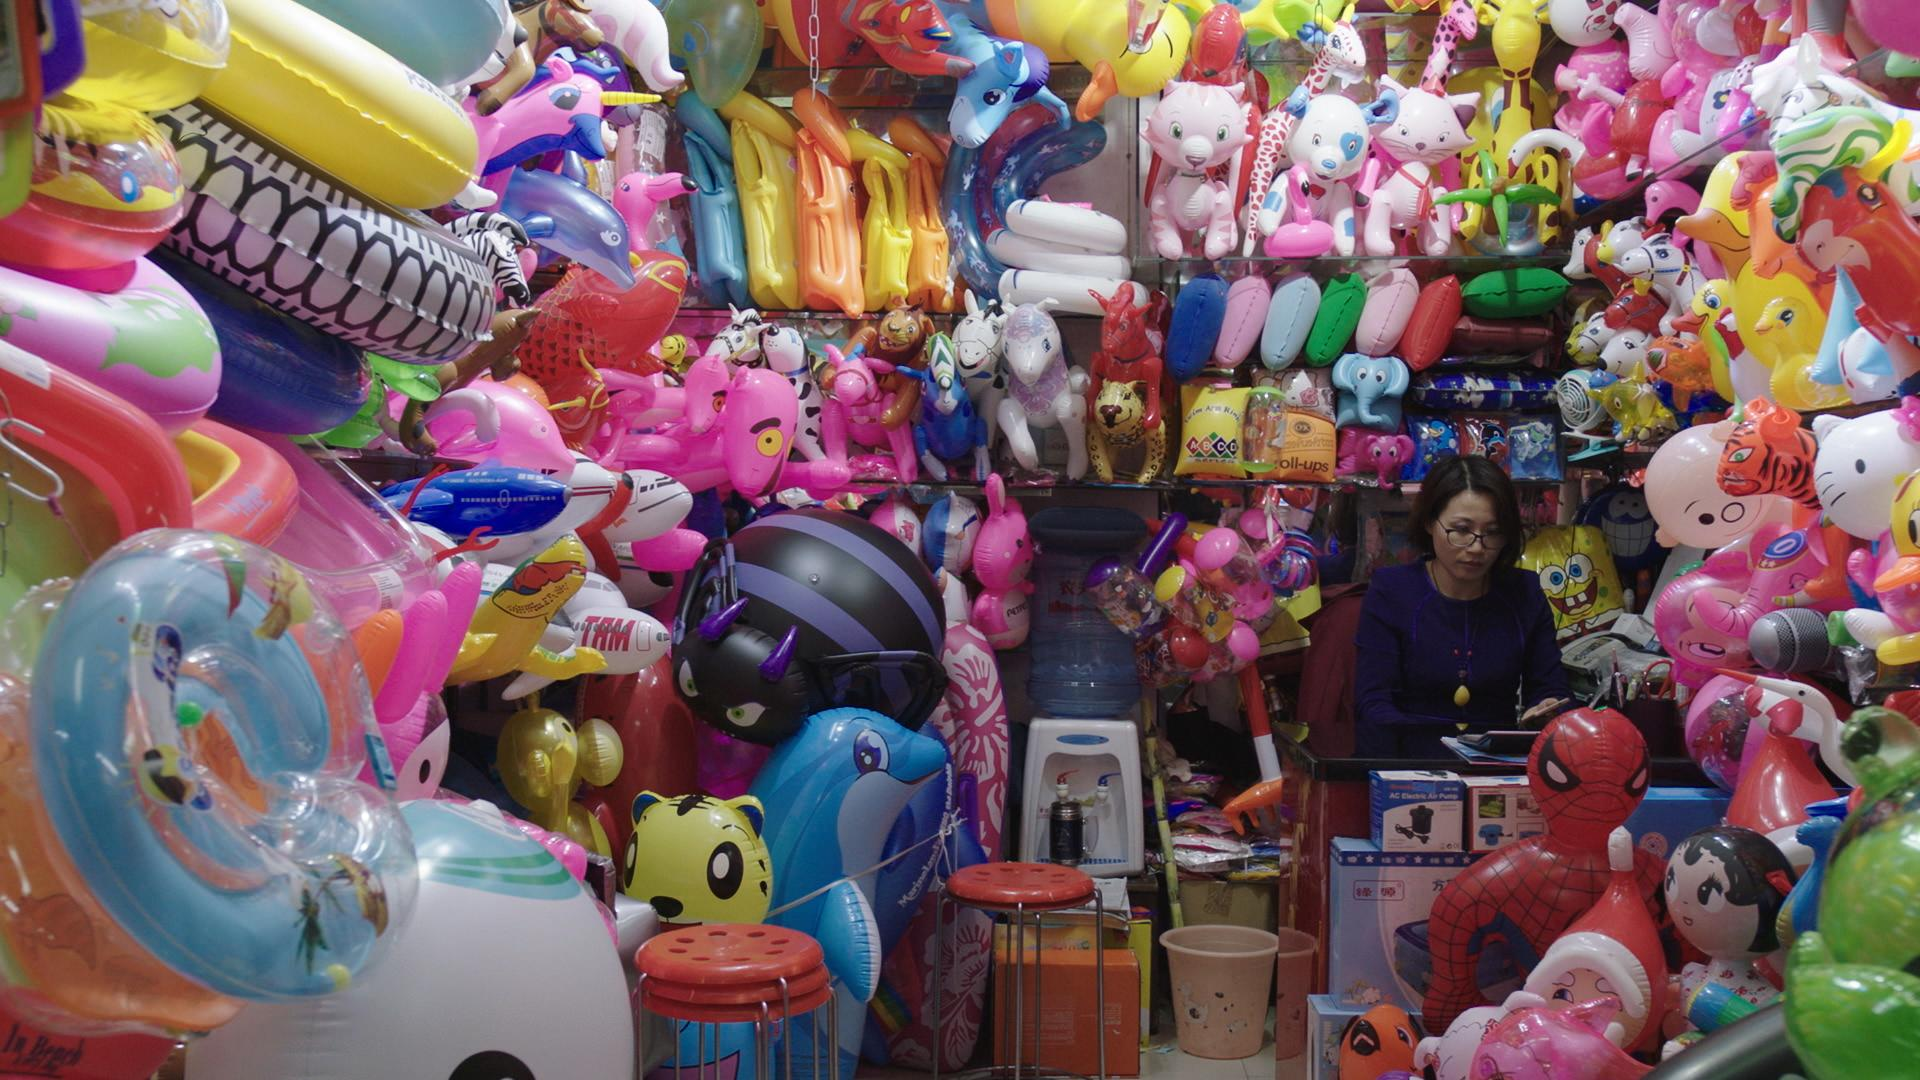 A woman sits in a room with walls fully covered with colorful inflatable animals and cartoon characters.